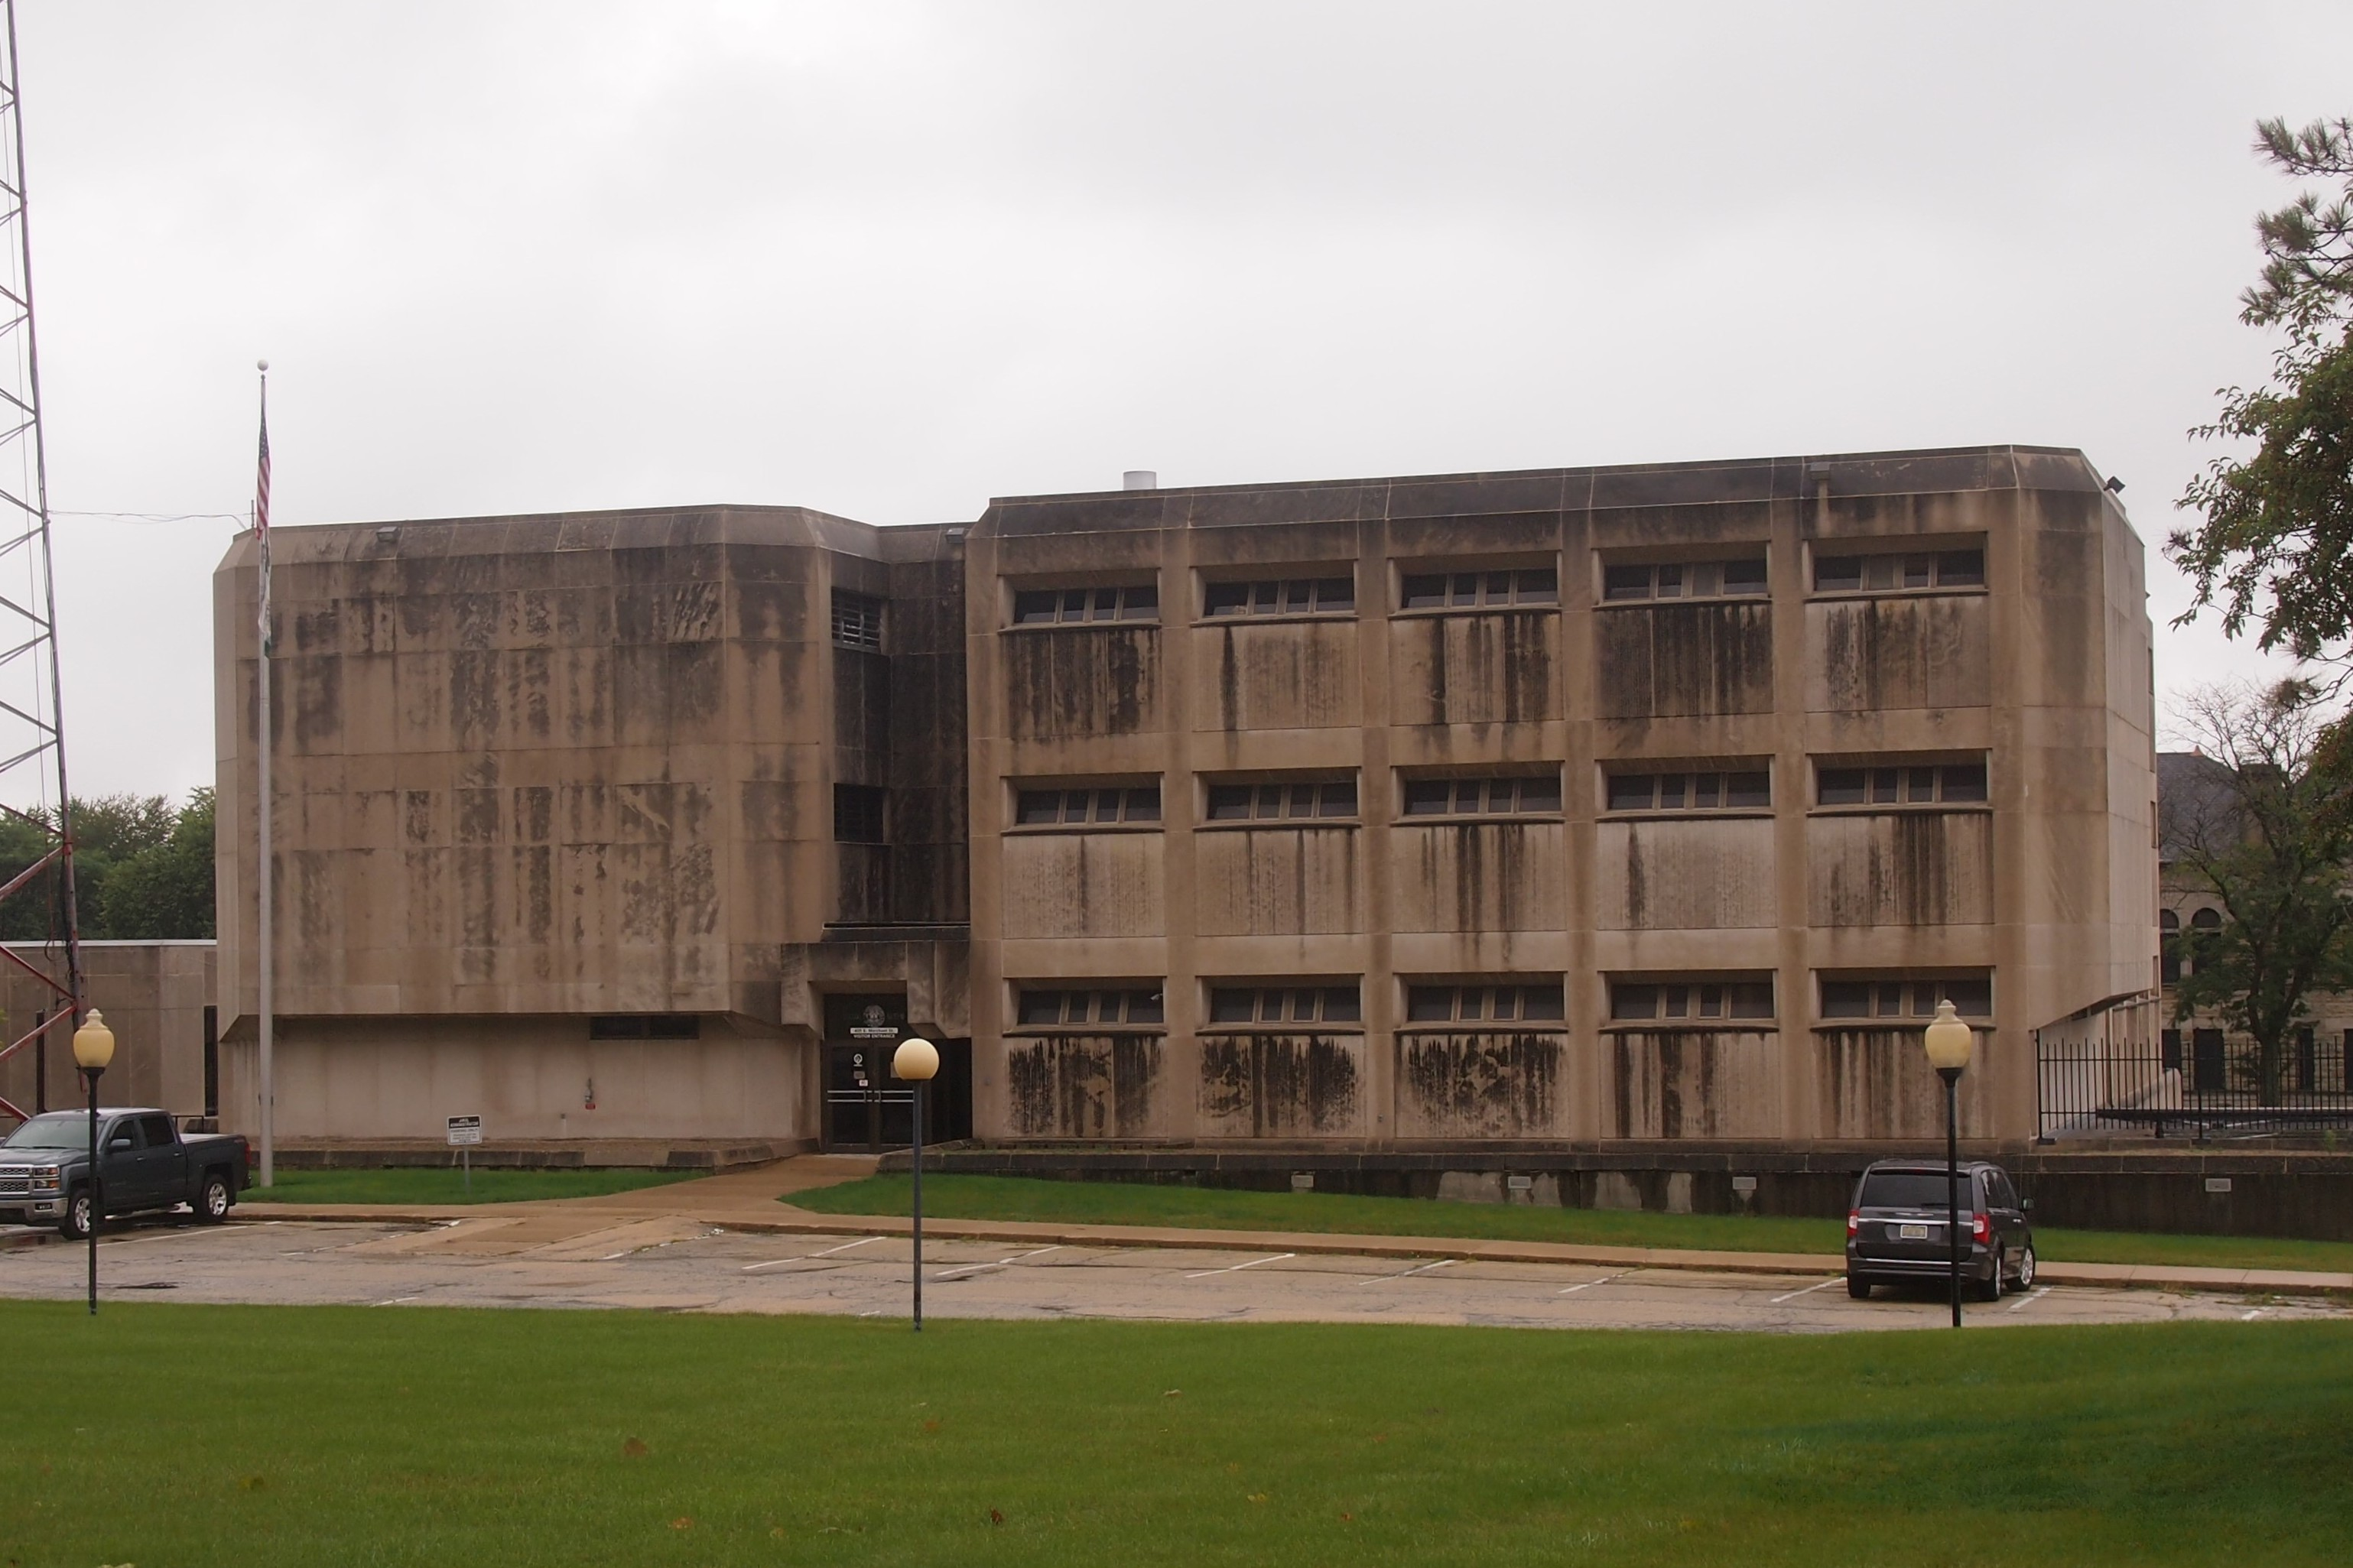 Kankakee County jail